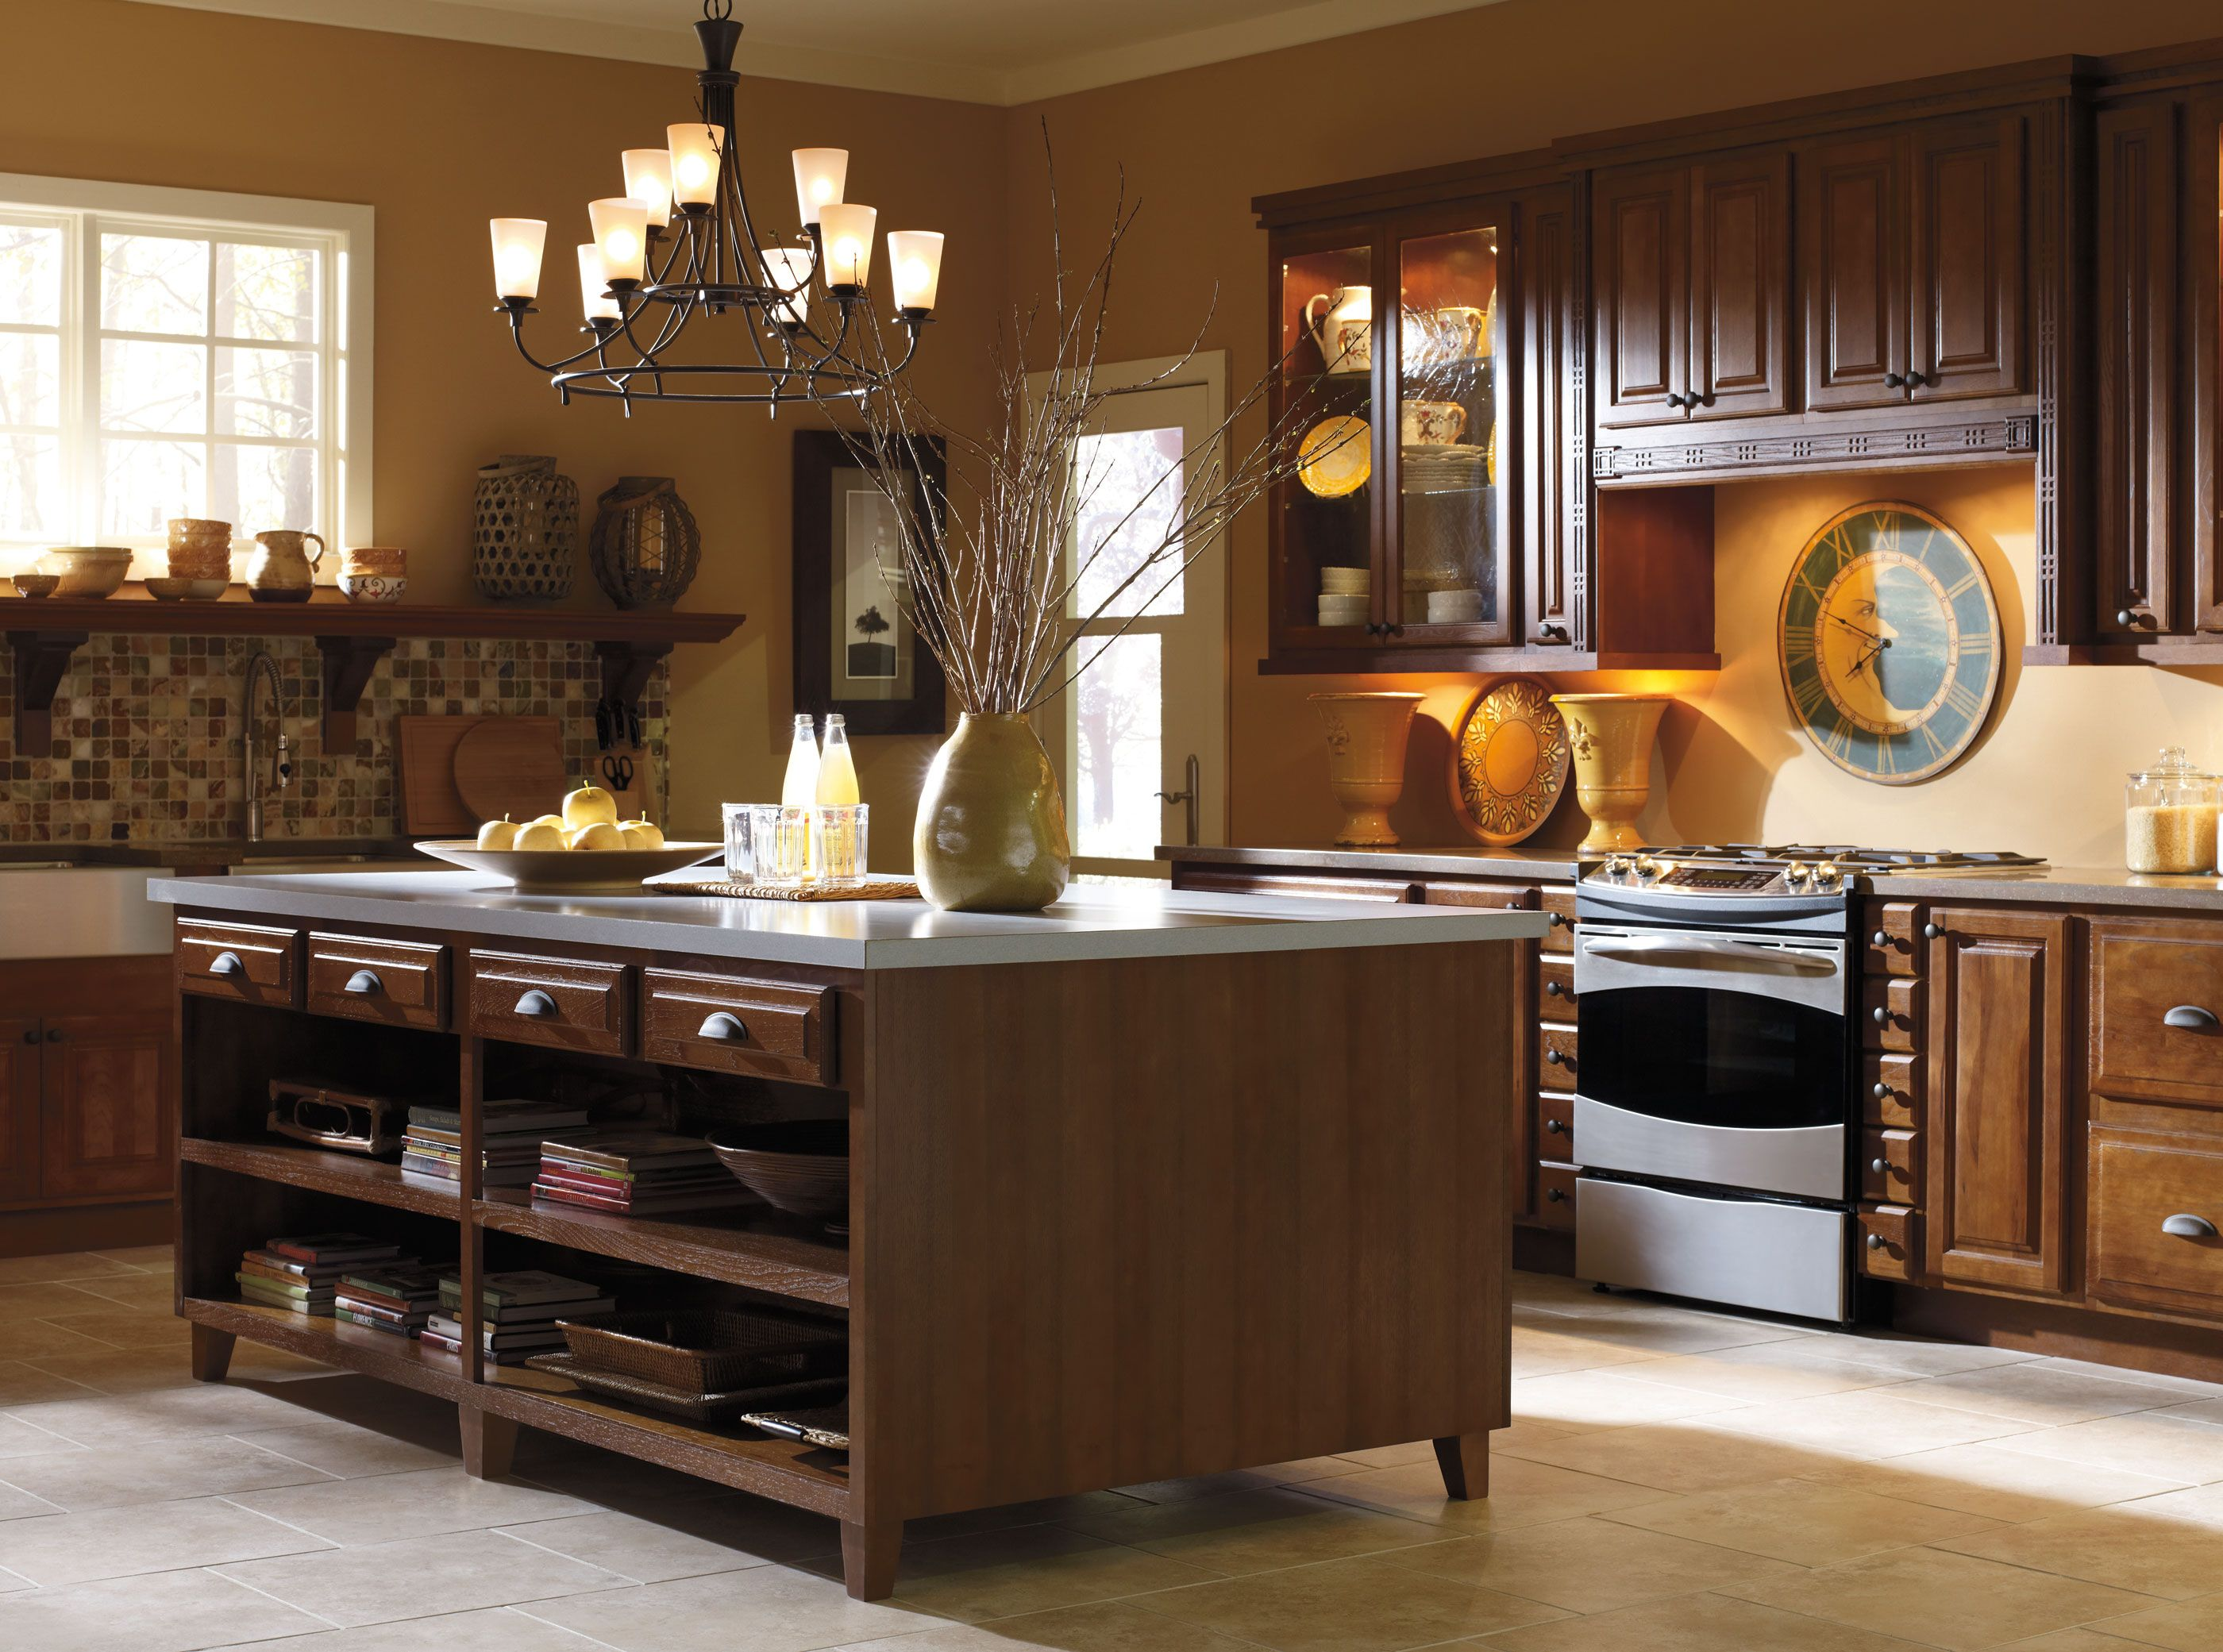 Pin on Rustic Kitchens